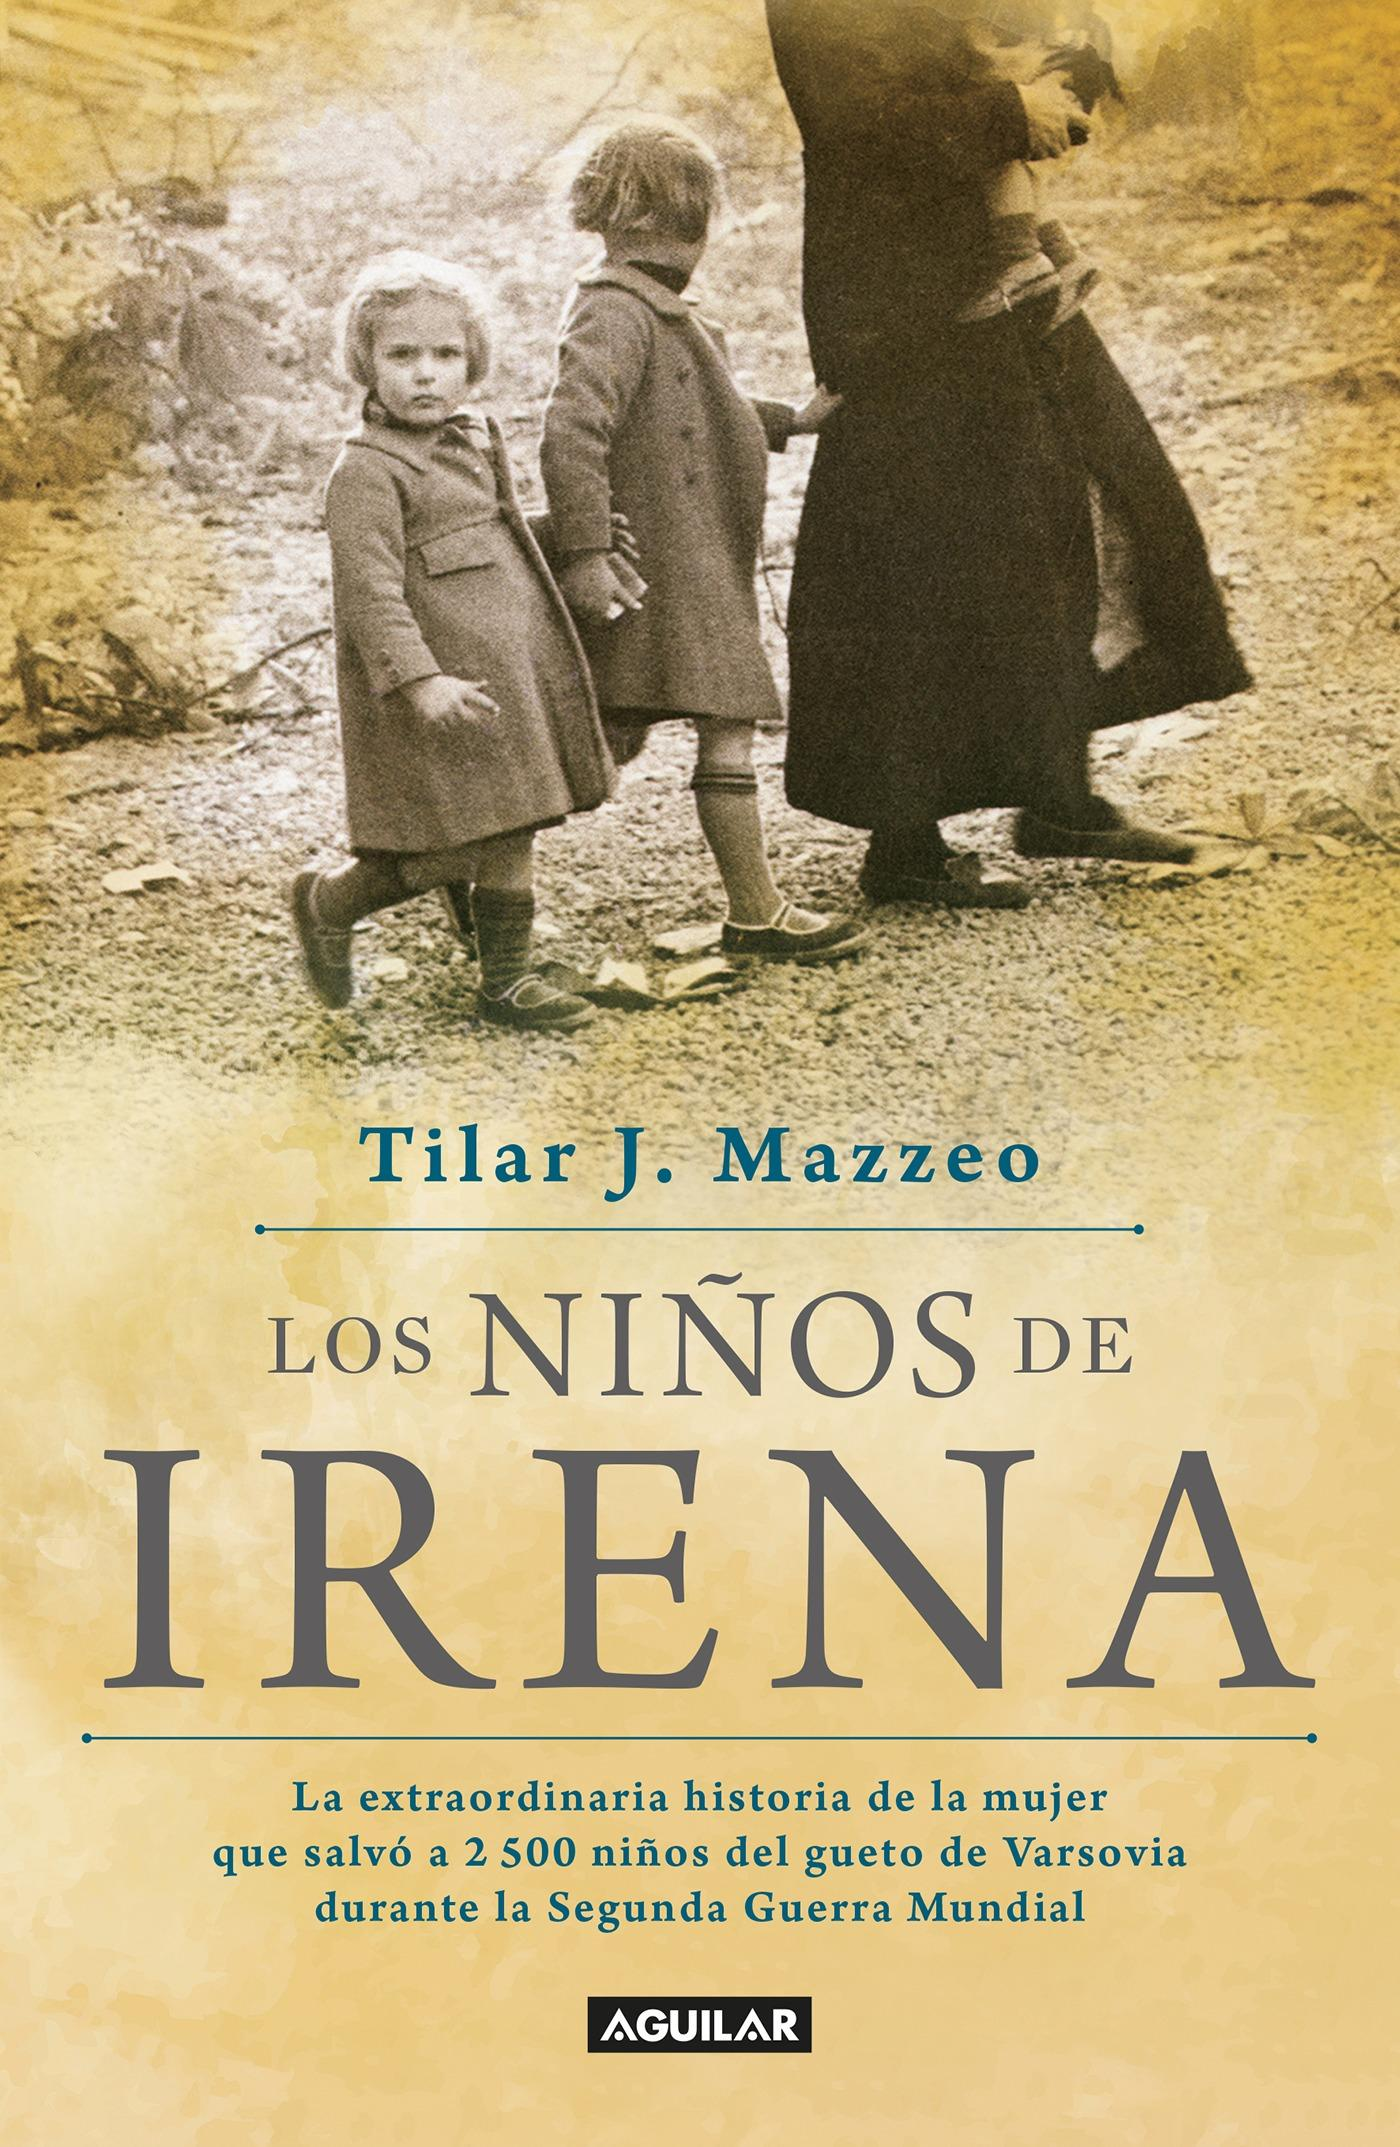 Irena's Children: The Extraordinary Story of the Woman Who Saved 2,500 Children from the Warsaw Ghet